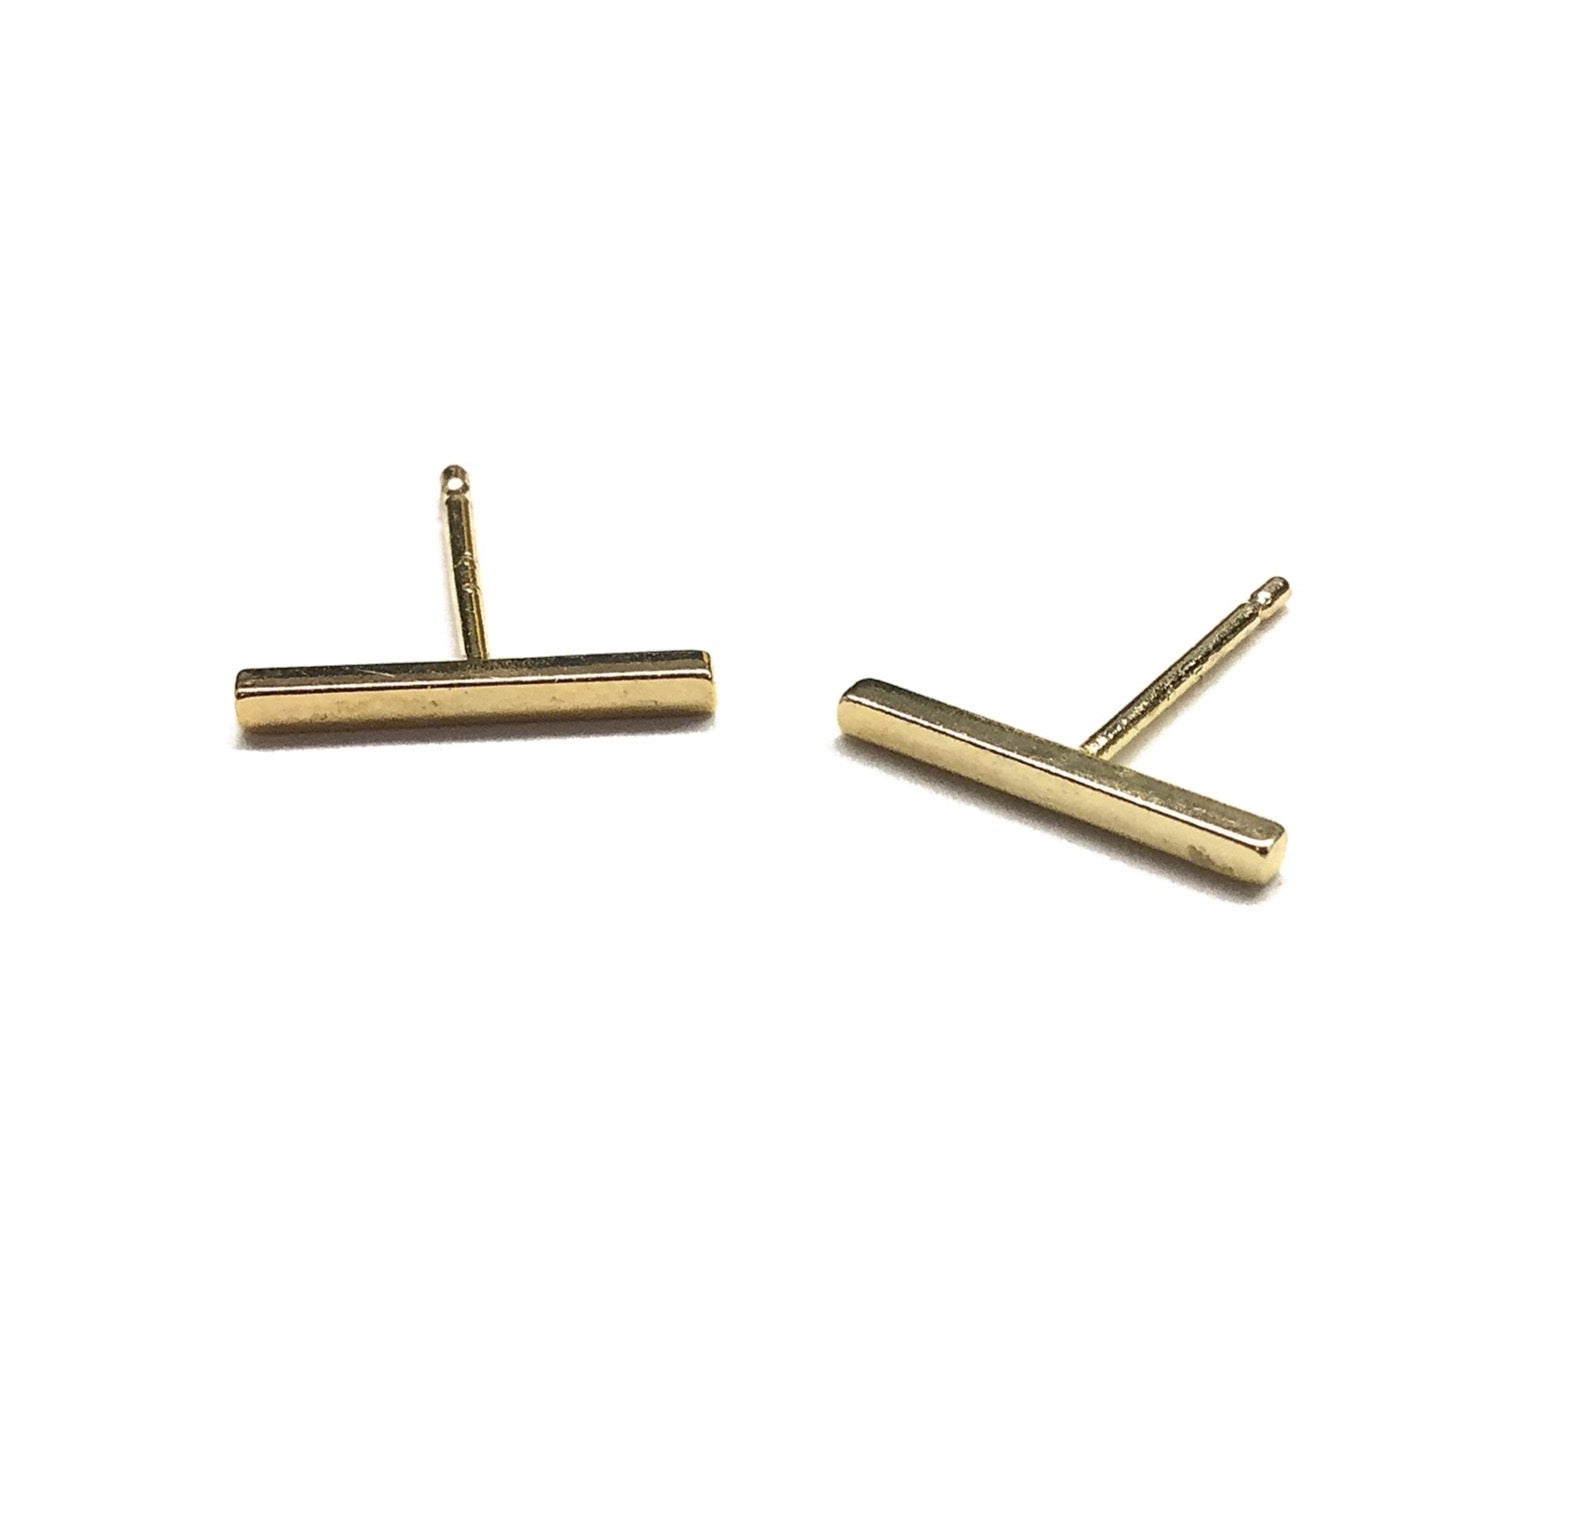 16k gold plated over brass stick bar stud earrings with sterling silver posts